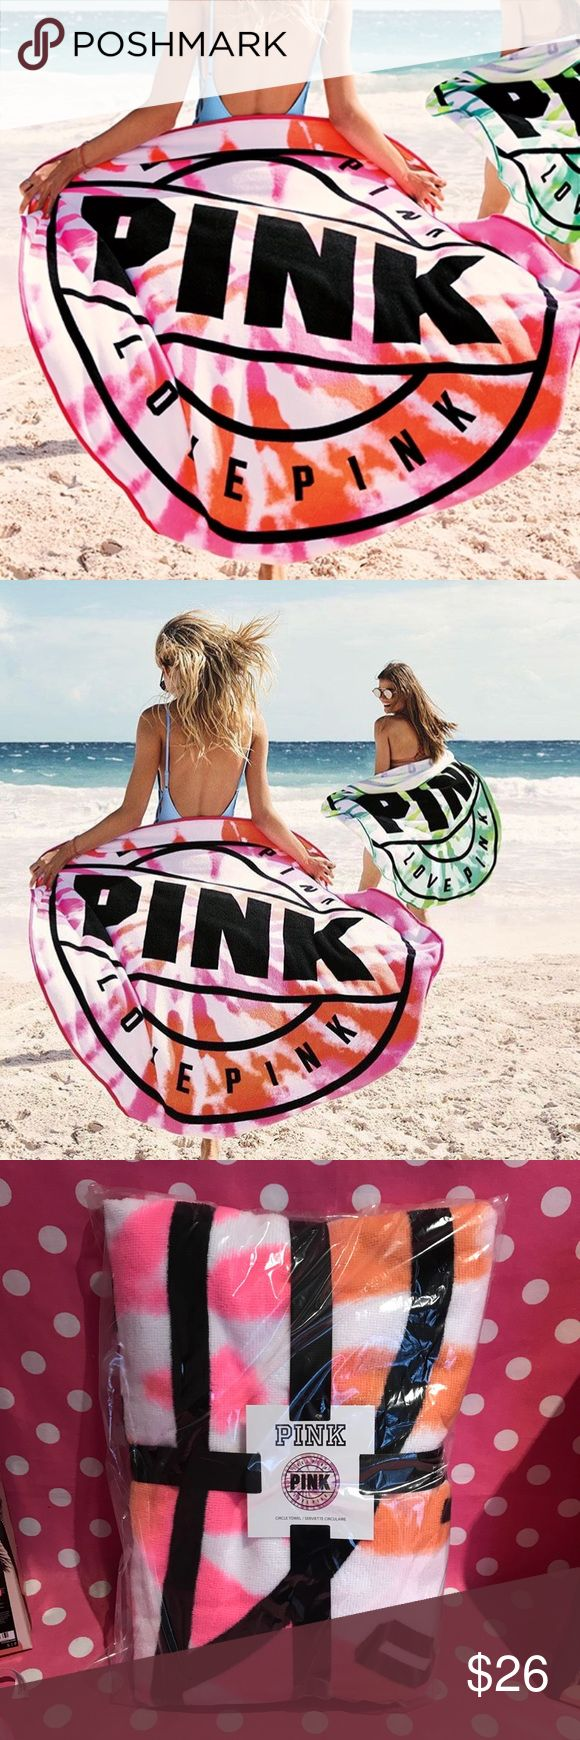 """NWT VS PINK round beach towel 💖Thanks for shopping at Candy Land!💖  ✅NWT VS PINK round beach towel  ‼️PRICES ARE FIRM ~ My items are priced at the lowest already. Please do not ask """"lowest"""". Remember Posh takes a fee 😩.   ⭐️LOTS OF NWT VS PINK items for sale on my page! ⛔️PLEASE NOTE: NWT= New with tags OR New in online bag. PINK online orders come in bags with NO tags.  🚫NO HOLDS   🚫NO MODELING 🚫I DON'T TRADE ✋LOWBALLS WILL BE IGNORED ✋RUDE COMMENTS = BLOCKED PINK Victoria's Secret…"""